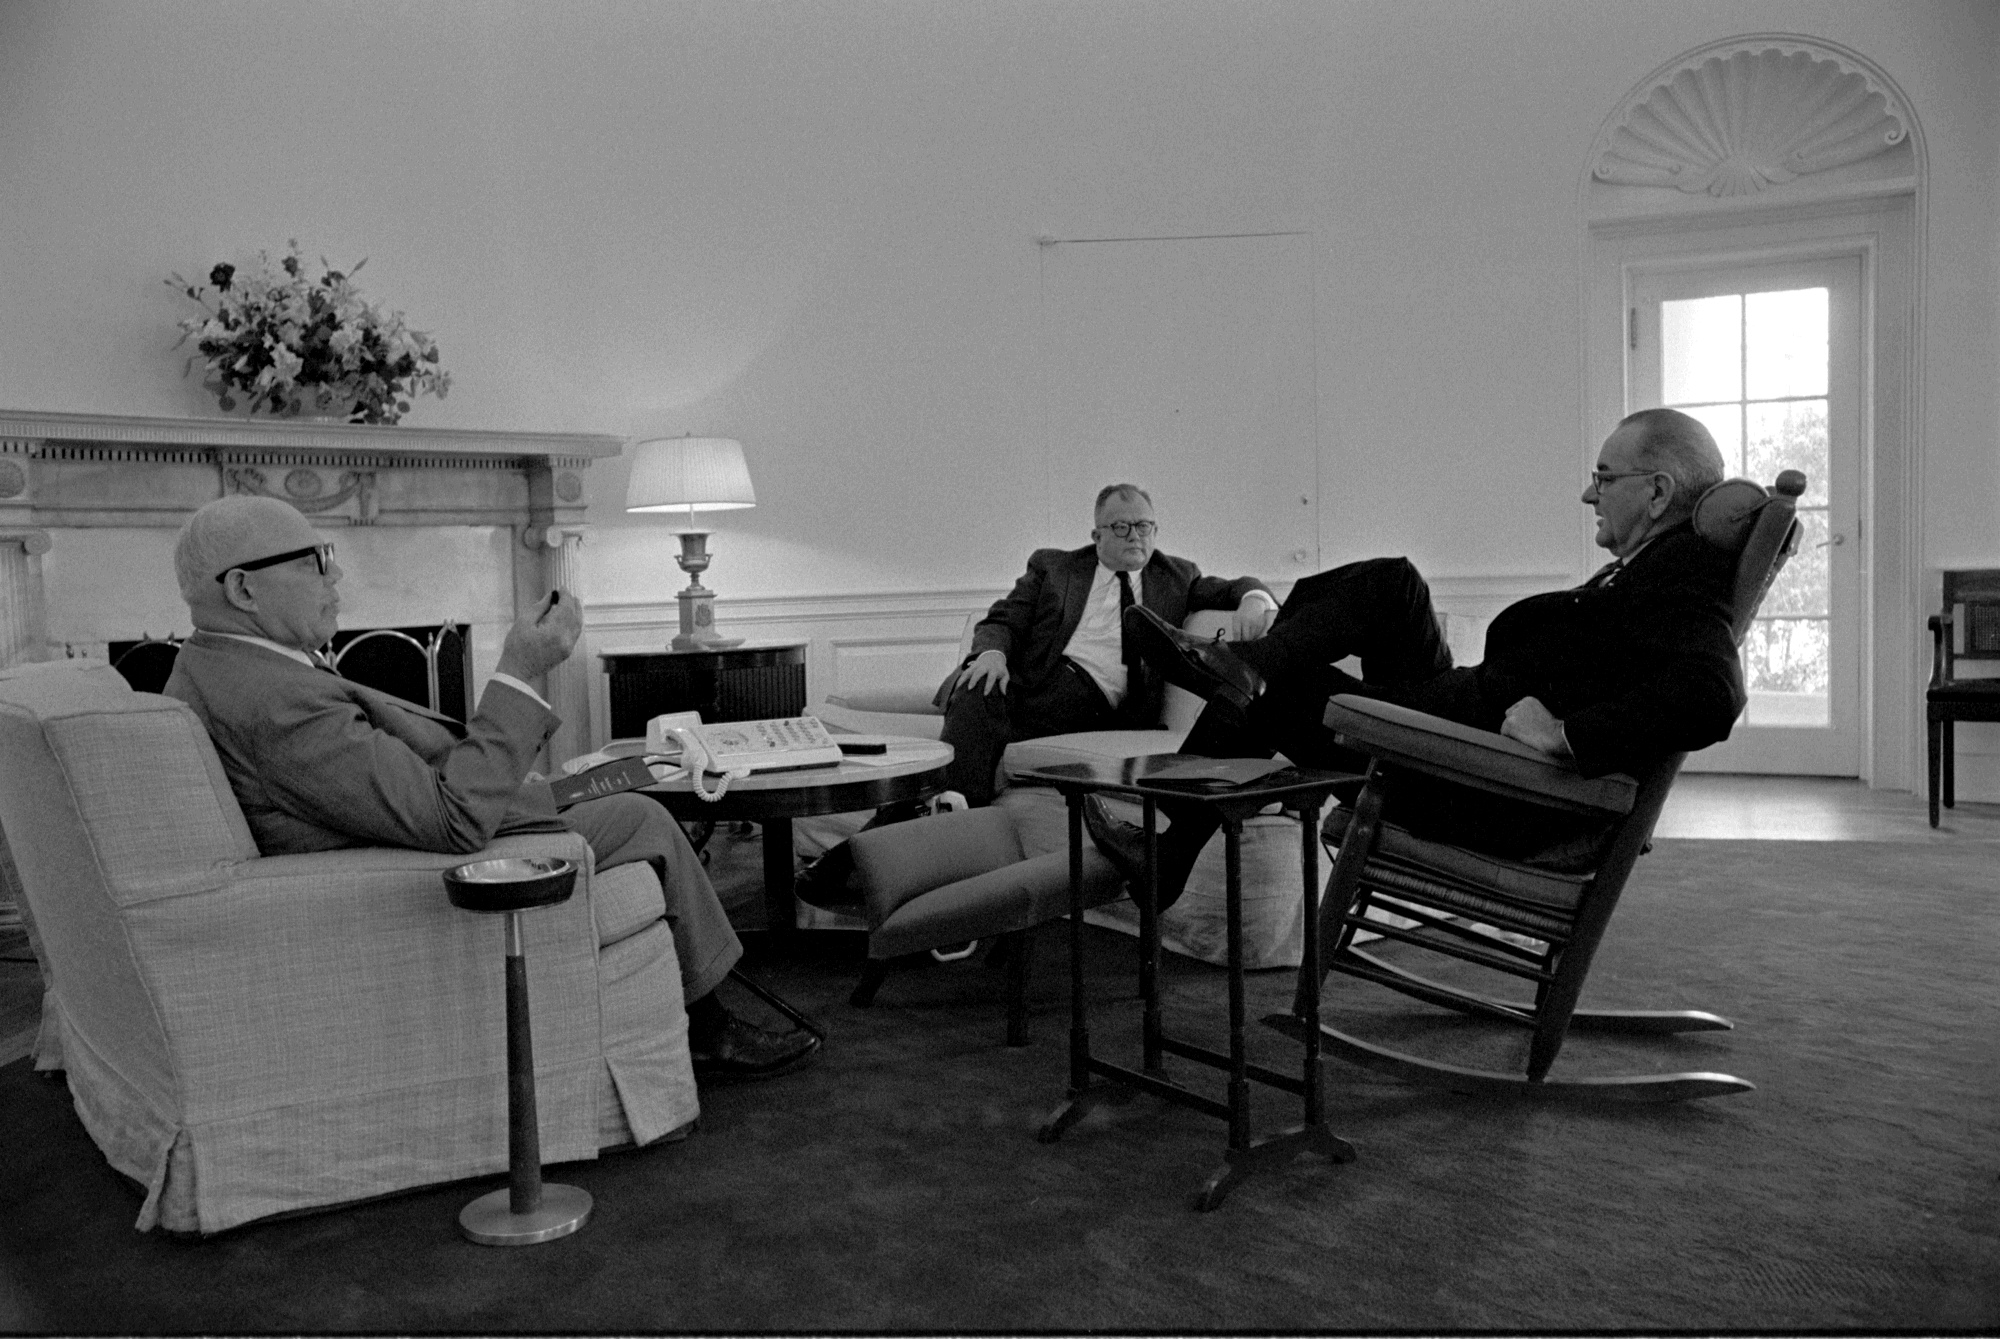 oval office july 2015. File:Meeting Oval Office LBJ.jpg July 2015